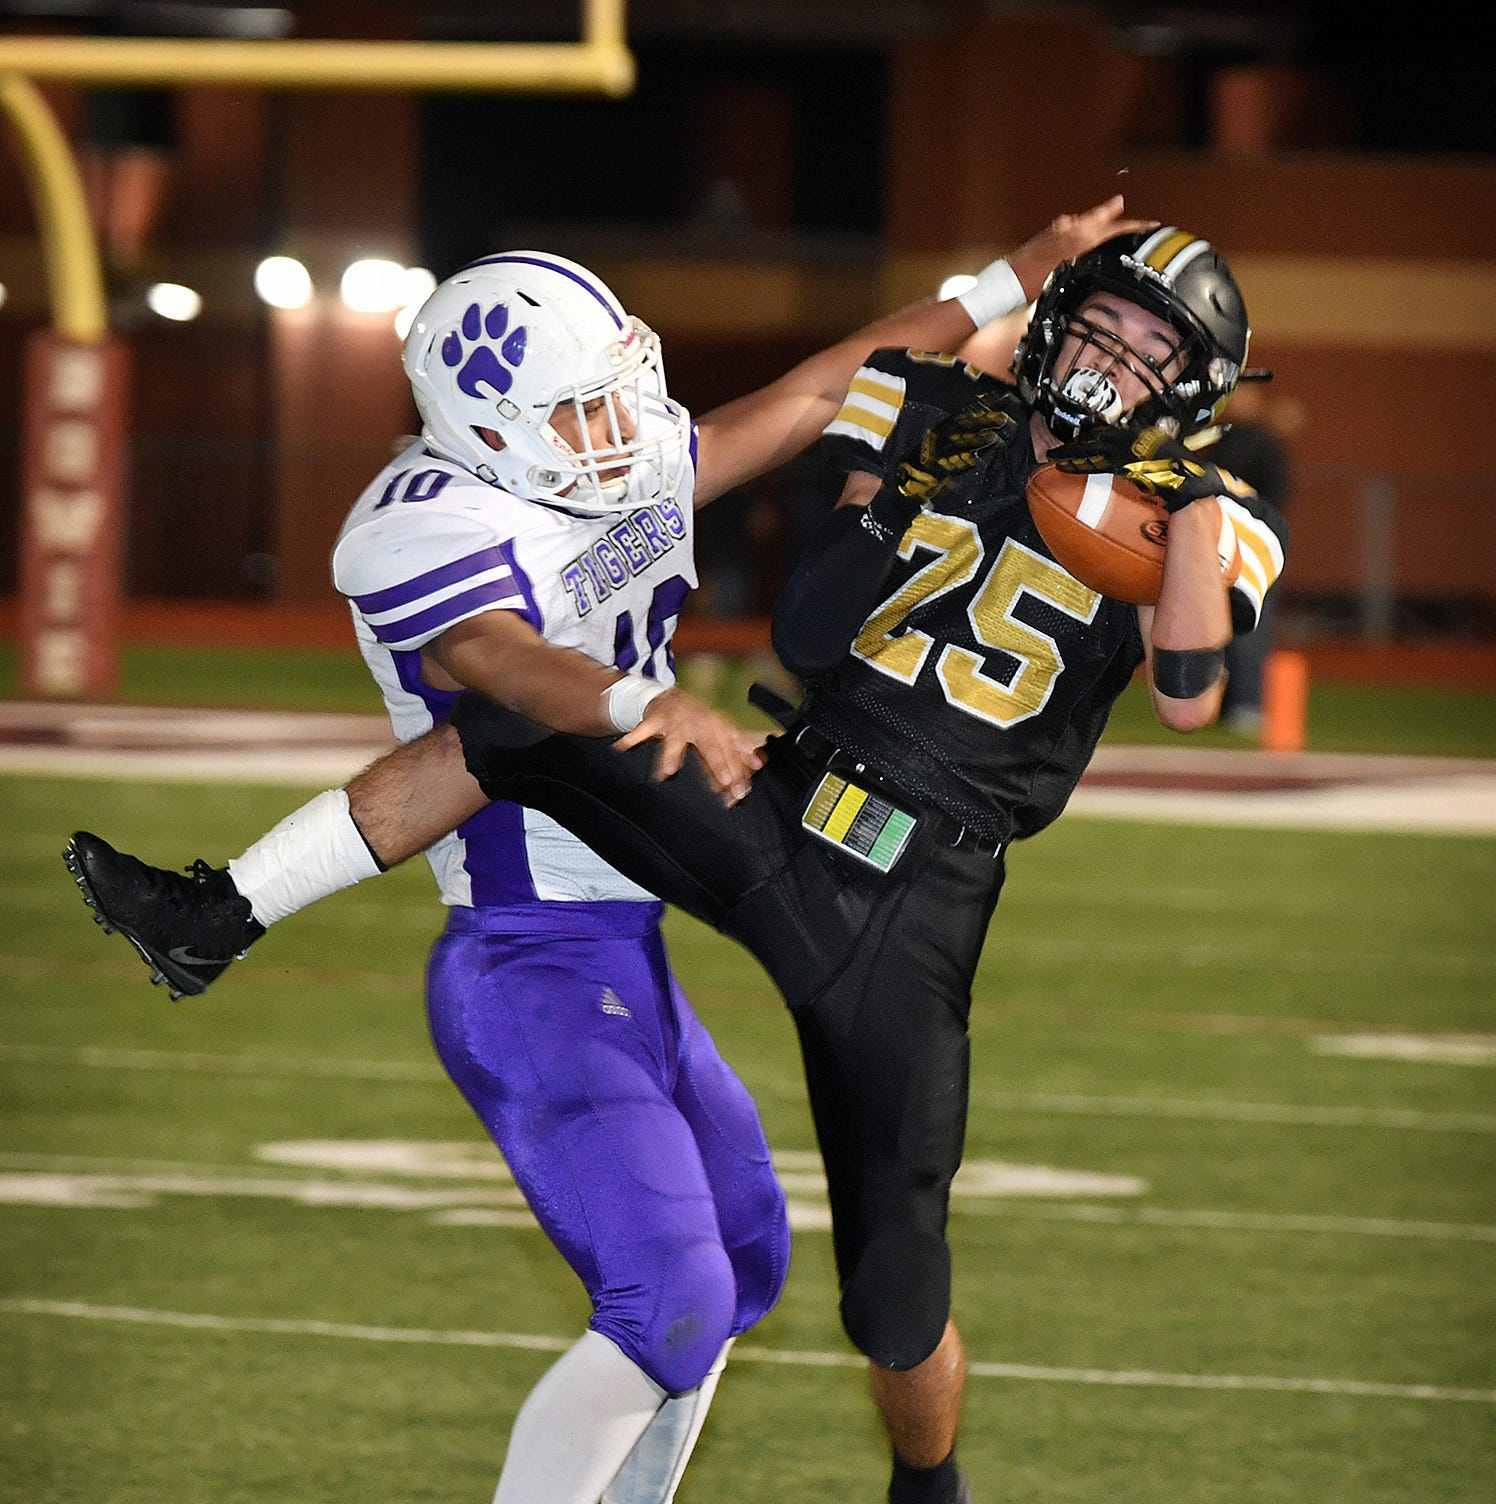 Duncan: Recapping bi-district and looking ahead to an enticing second round